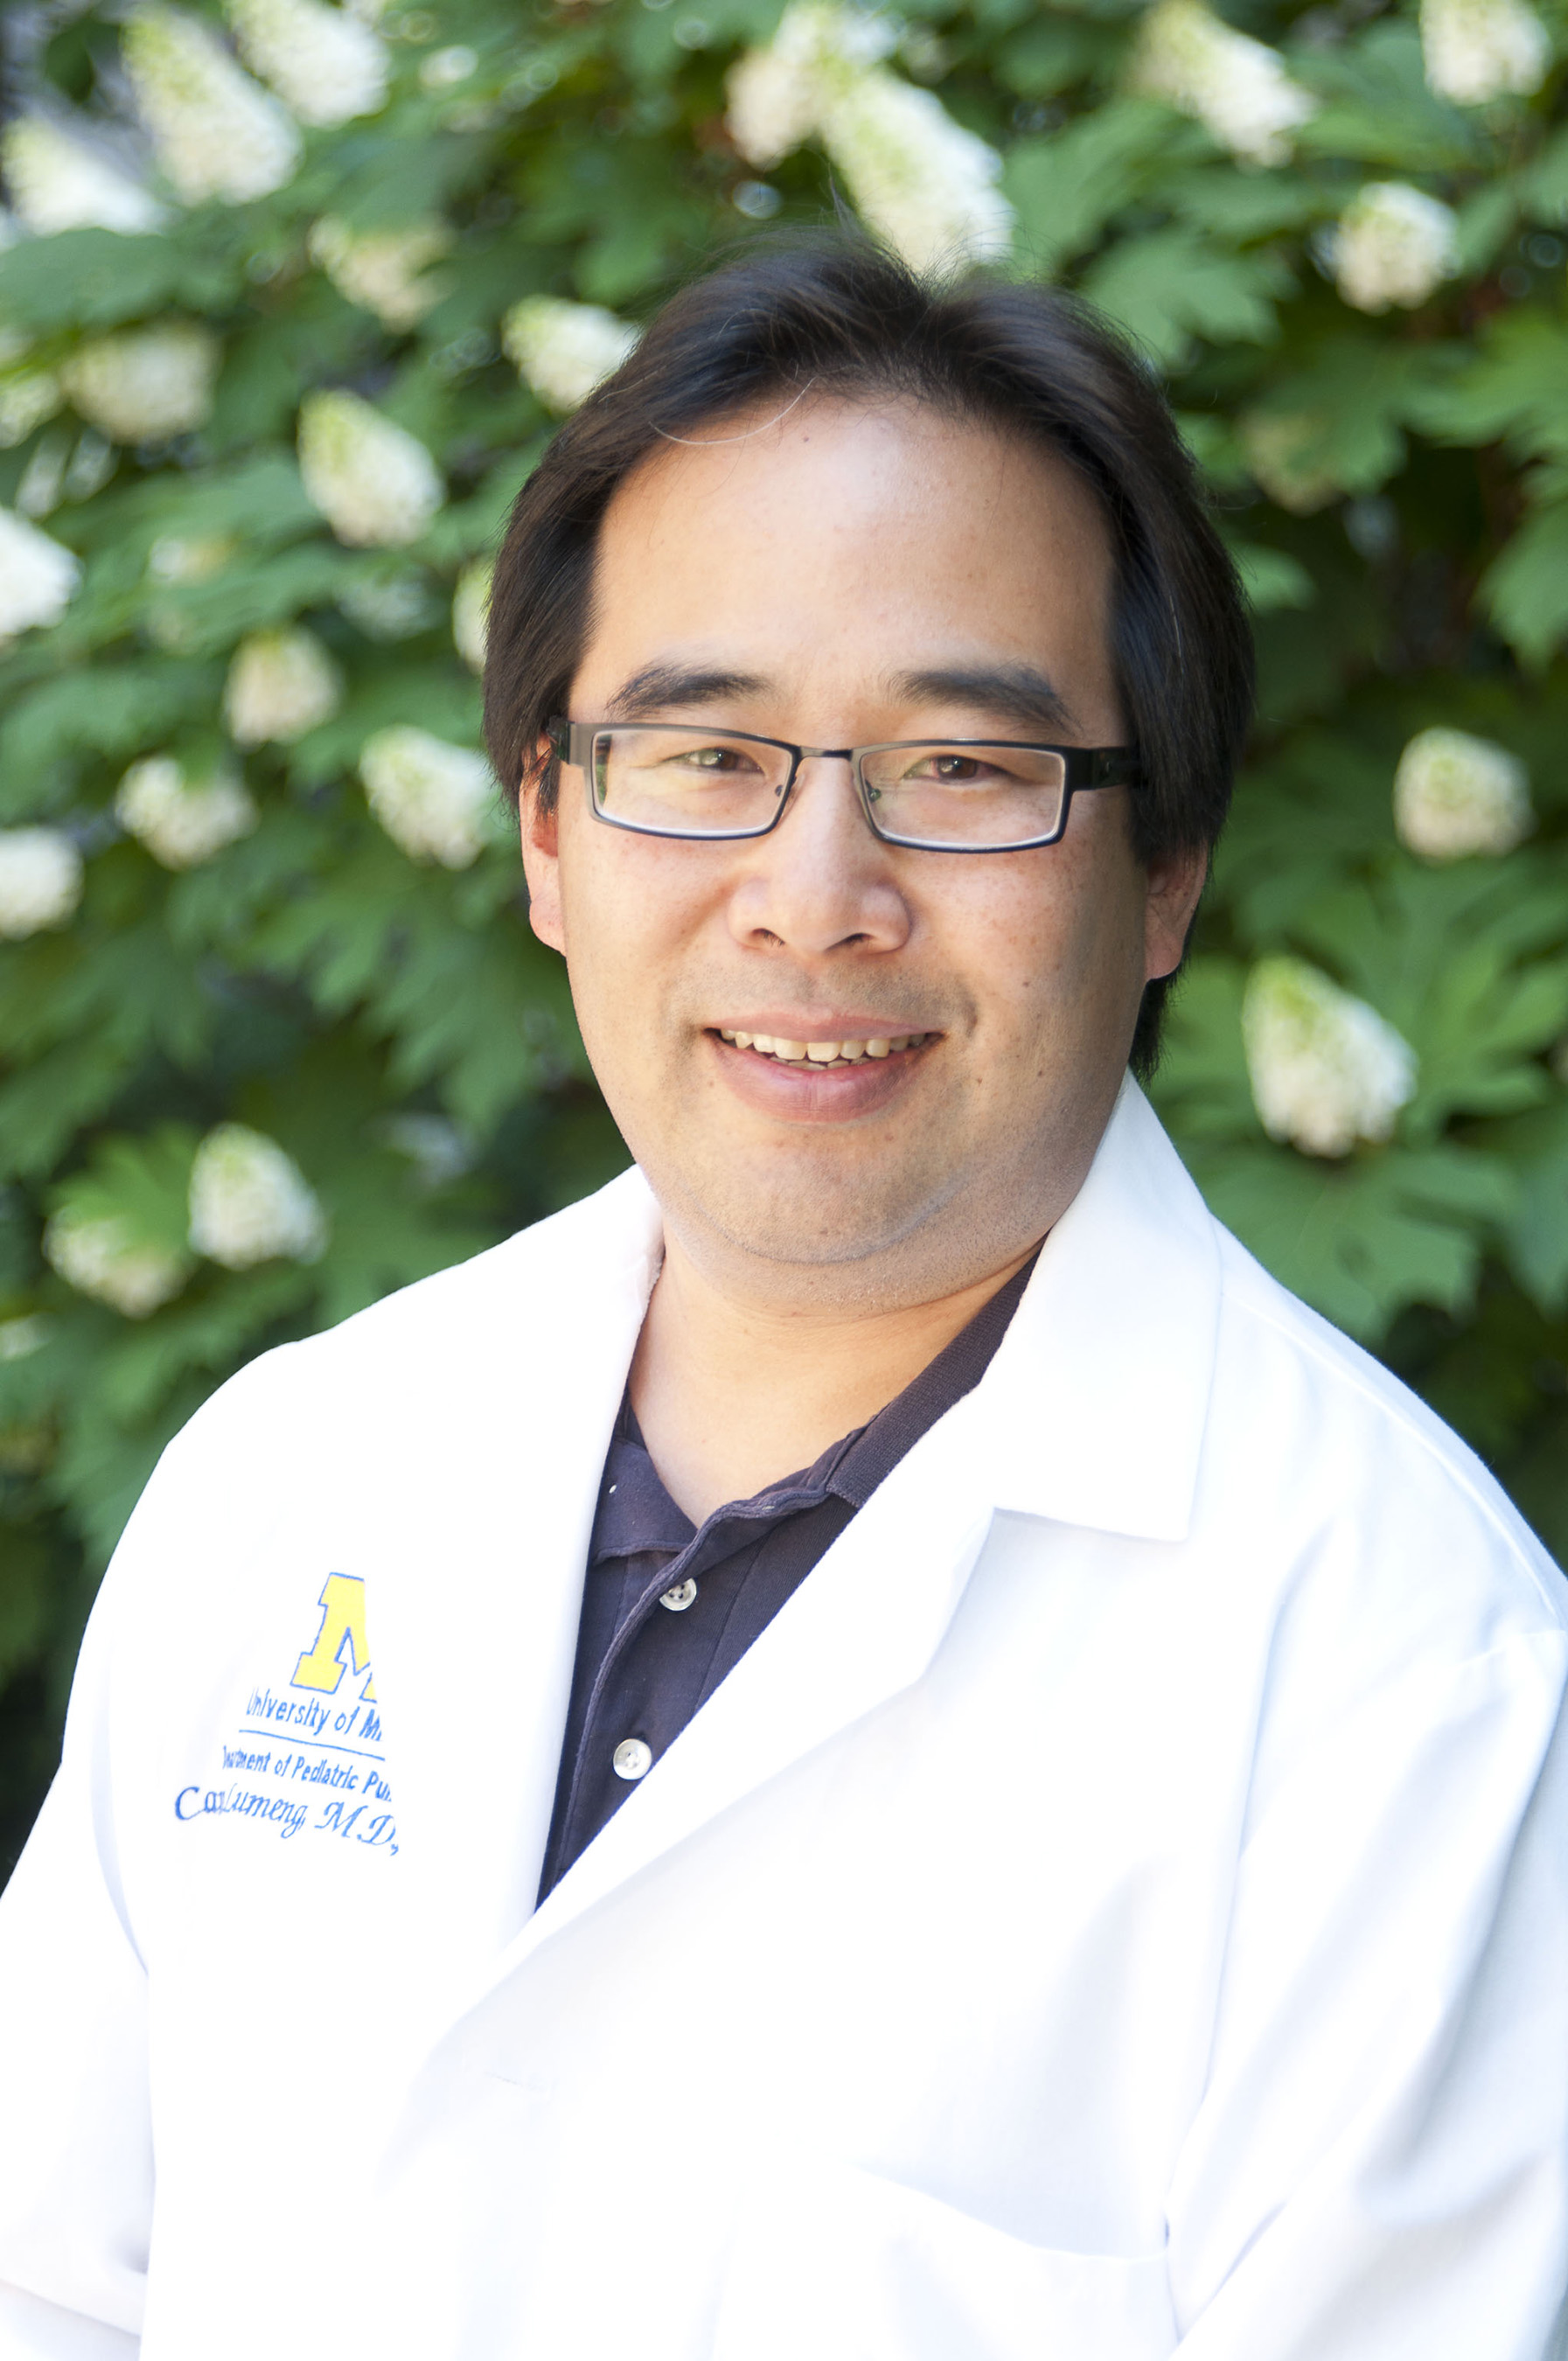 Carey Lumeng, MD, PhD, ObesityWeek Co-Chair and Assistant Professor at the University of Michigan Medical School